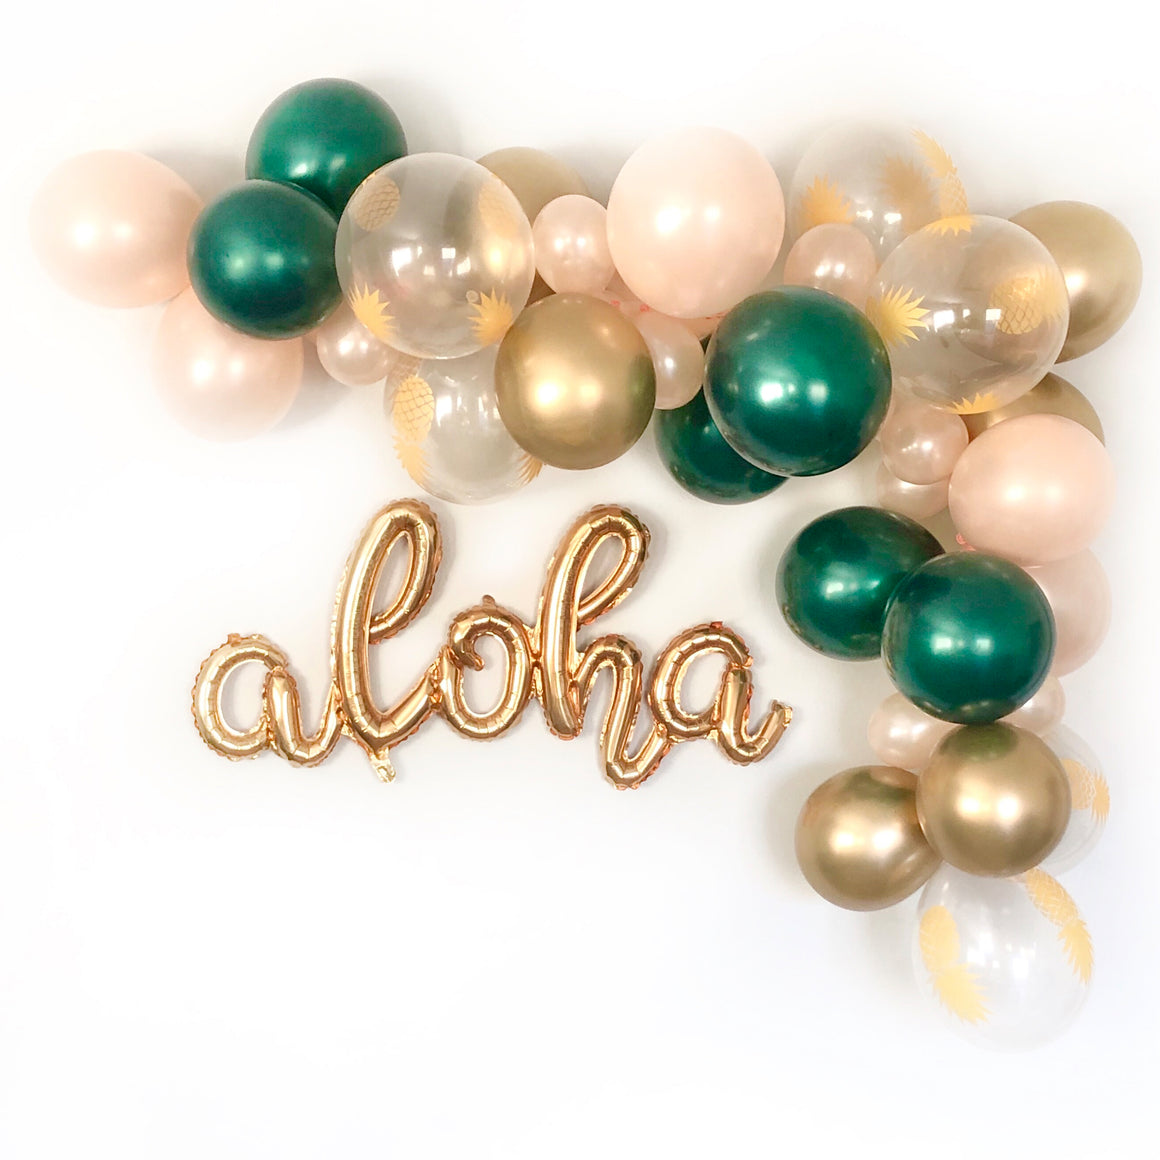 Aloha Balloon Garland Kit